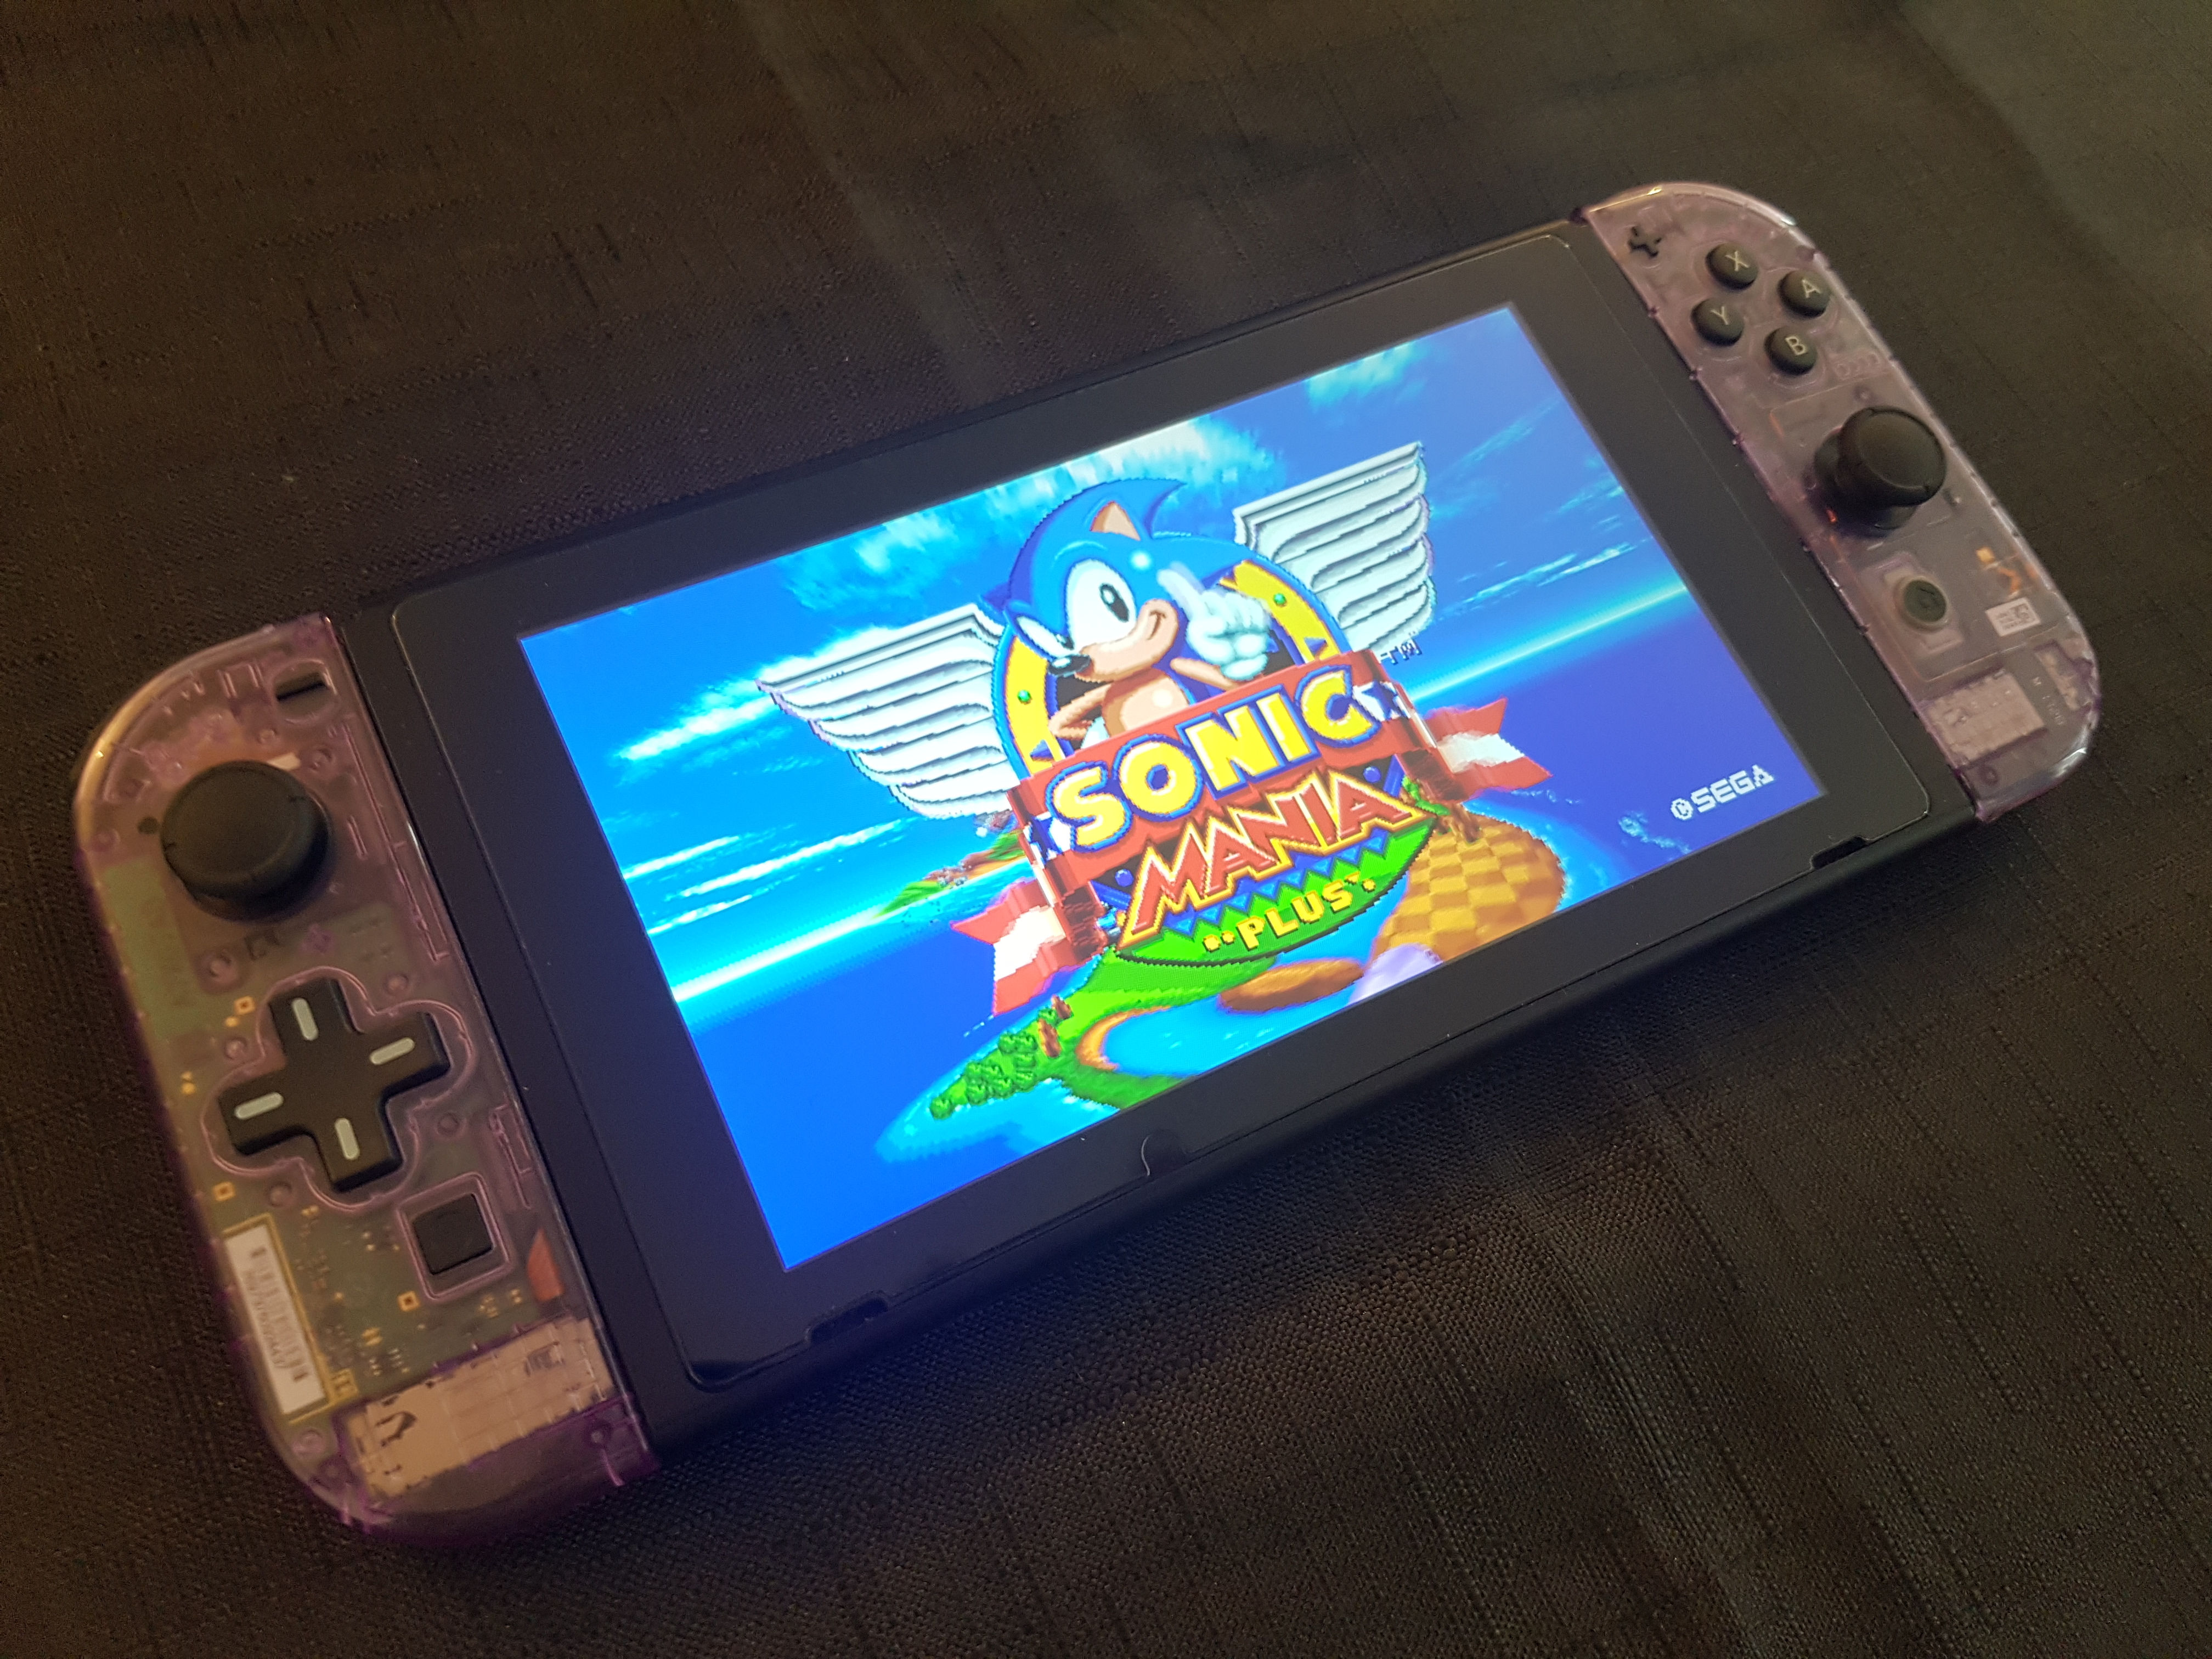 729907e9b12 ... a set of Joy-Cons – and I love the results so much I just had to take a  moment to post about it. I mean